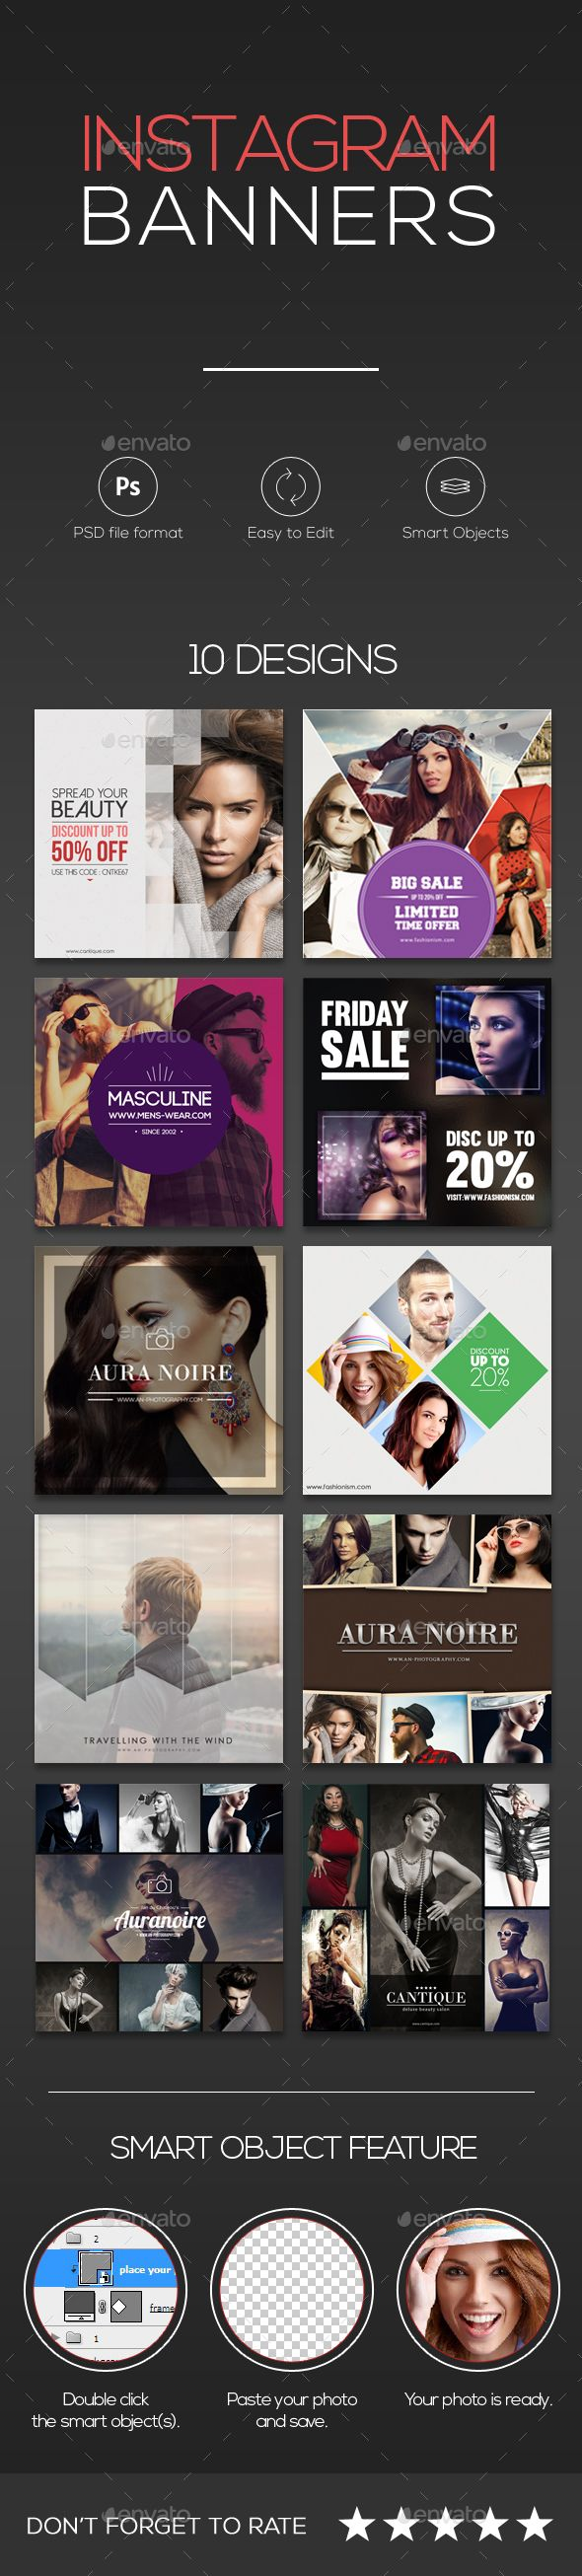 10 Instagram Banners - Miscellaneous Social Media